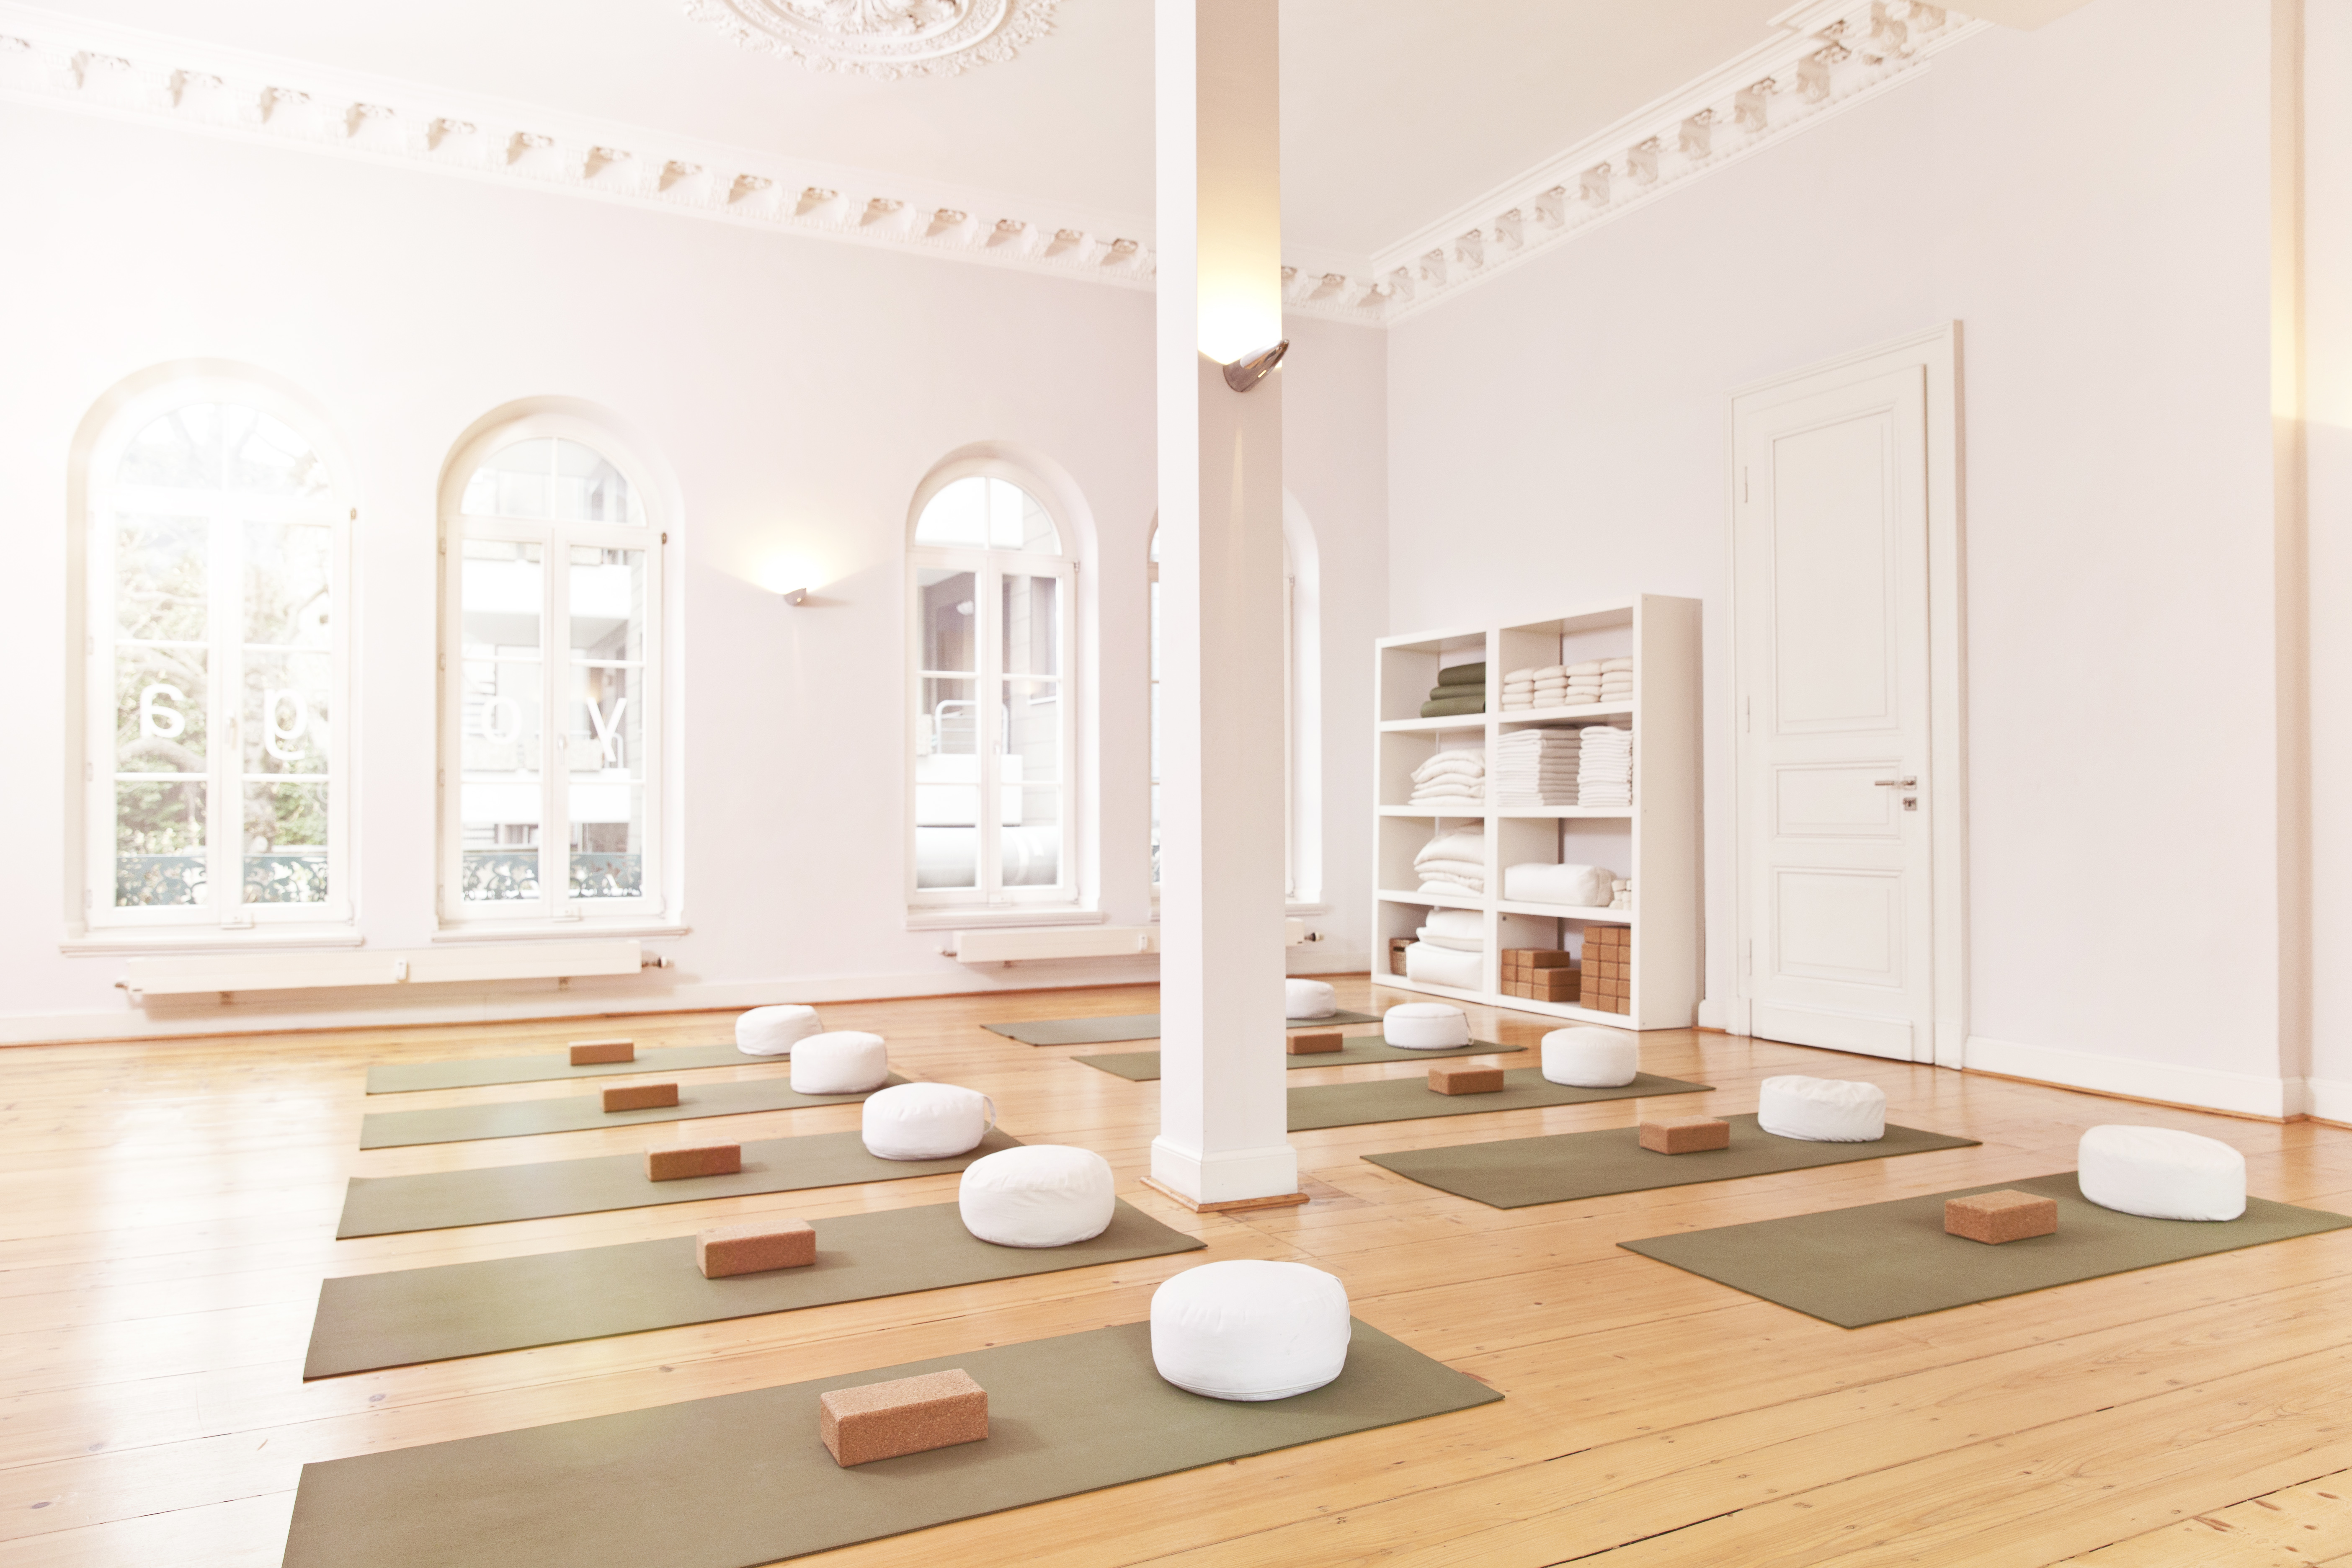 A spacious and empty yoga studio with mats laid out.